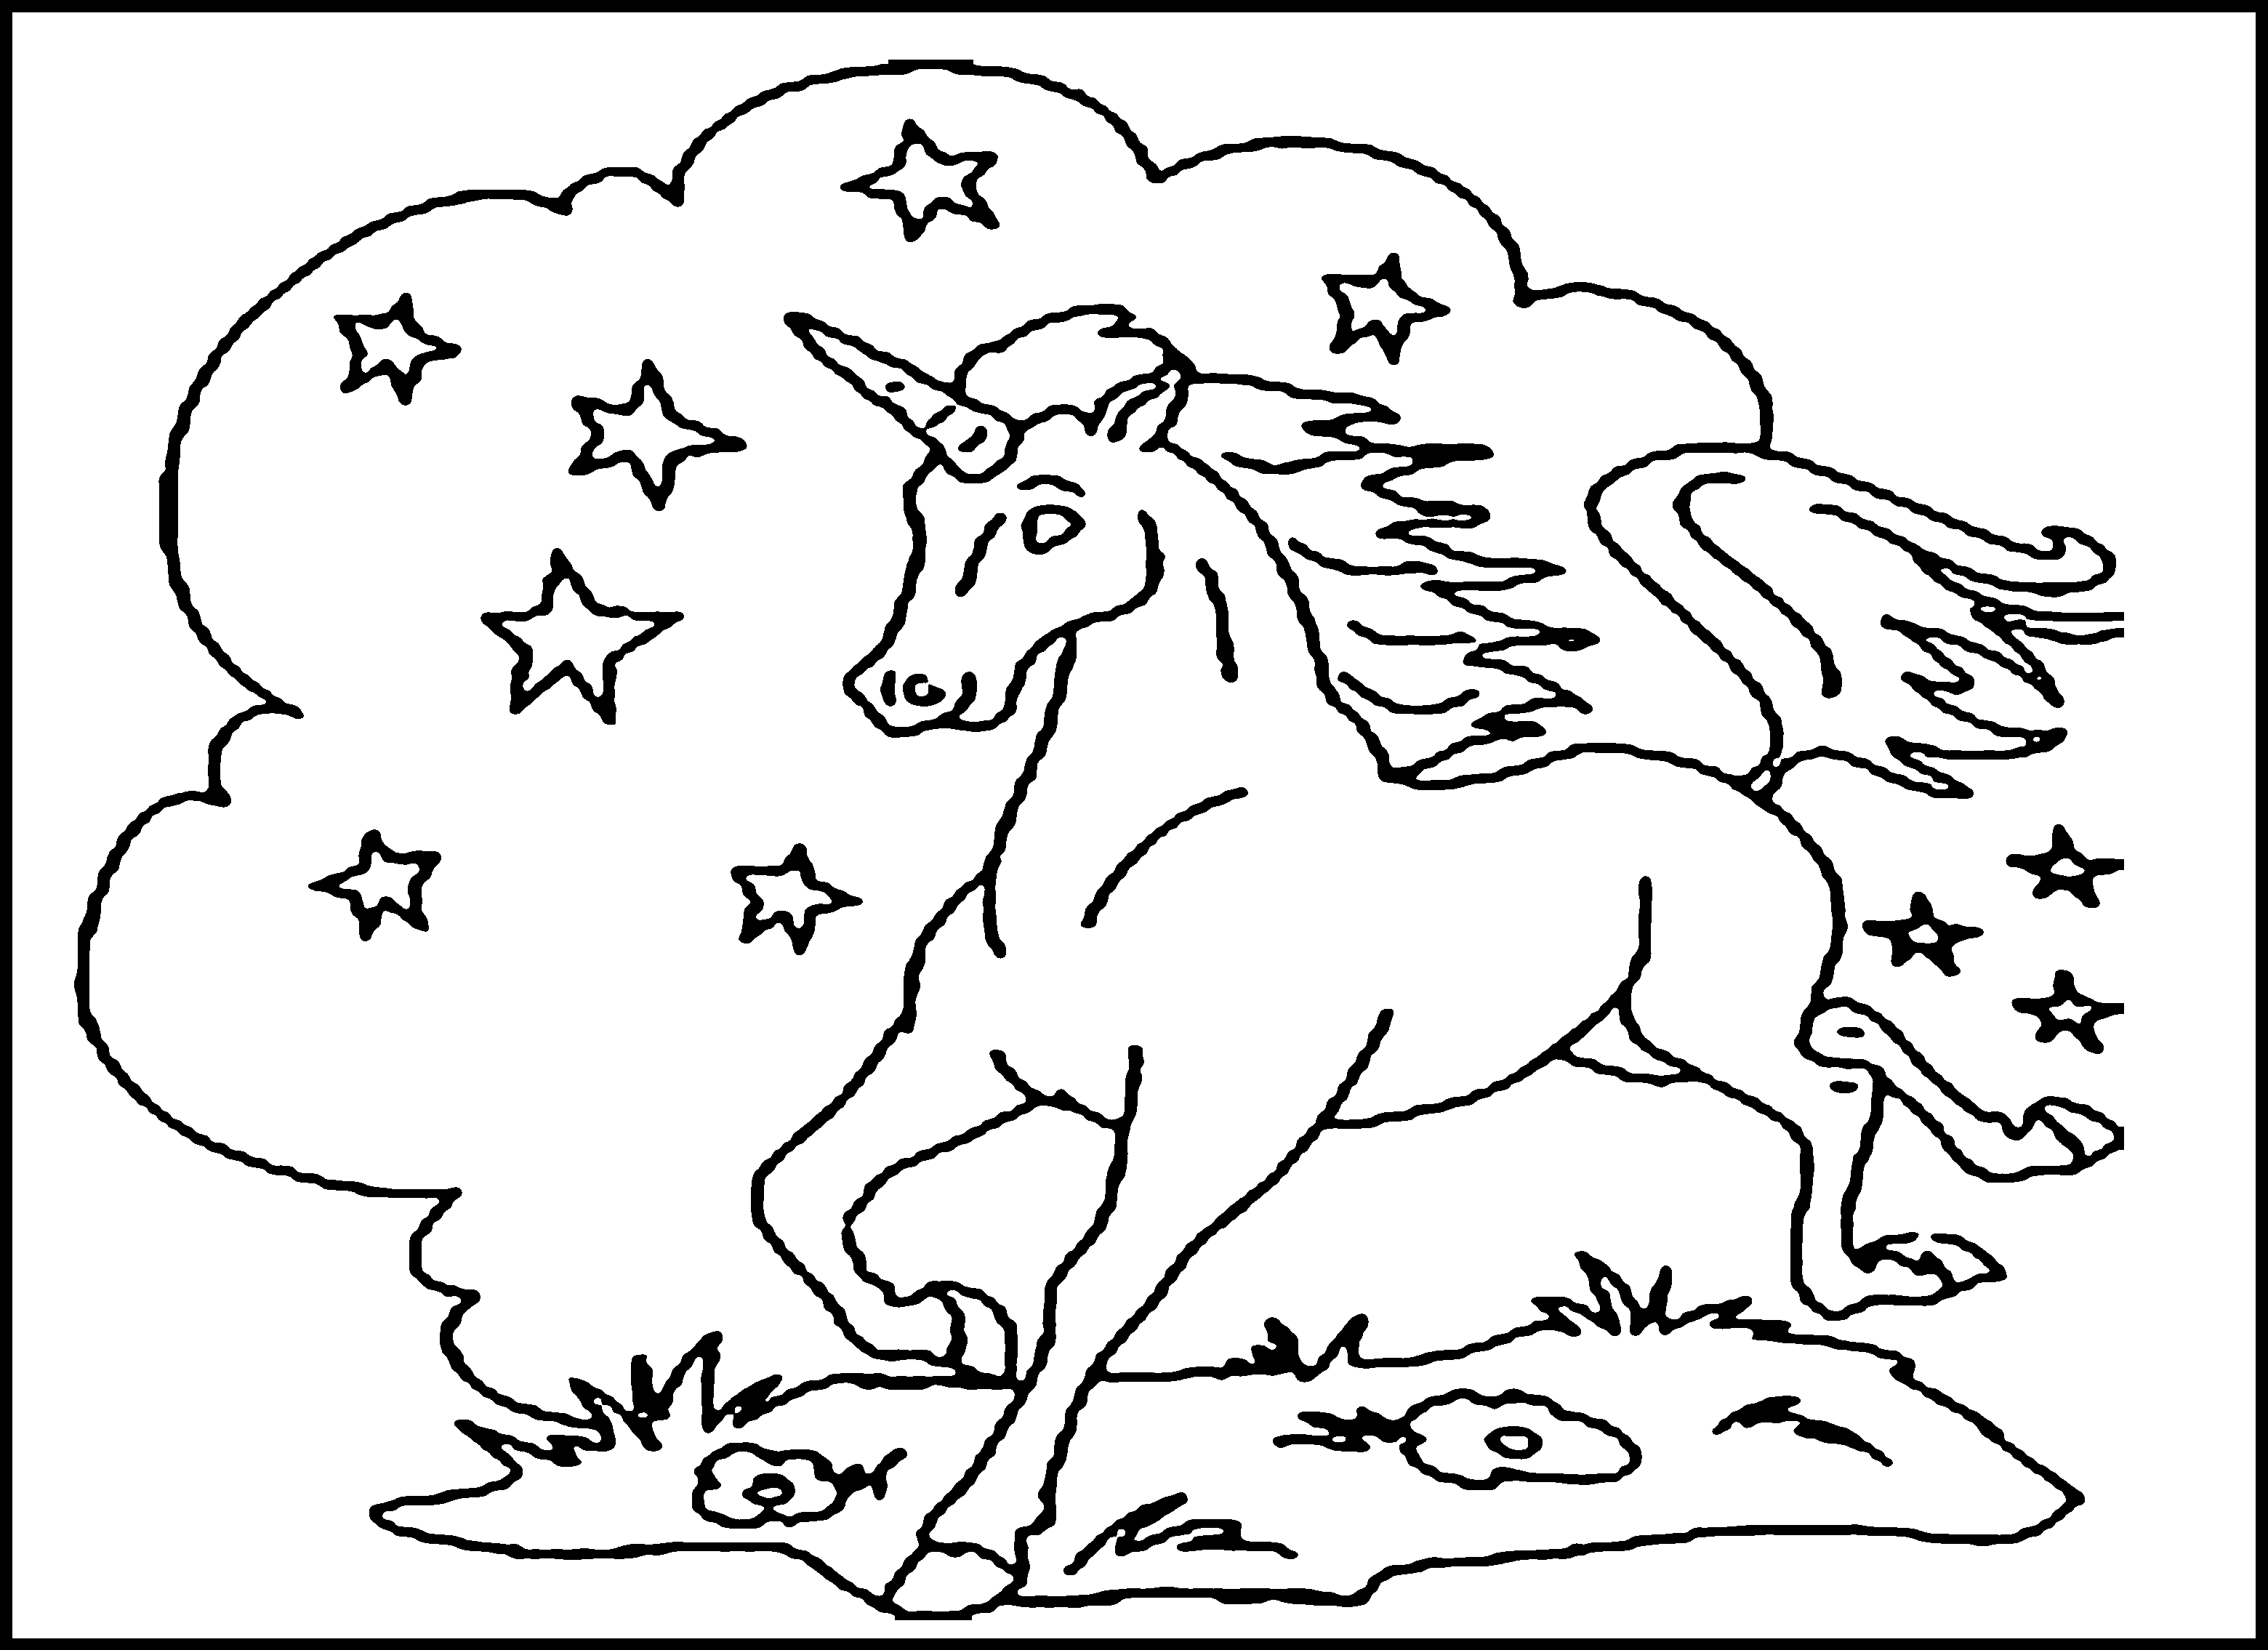 3120x2270 Free Printable Unicorn Coloring Pages For Kids